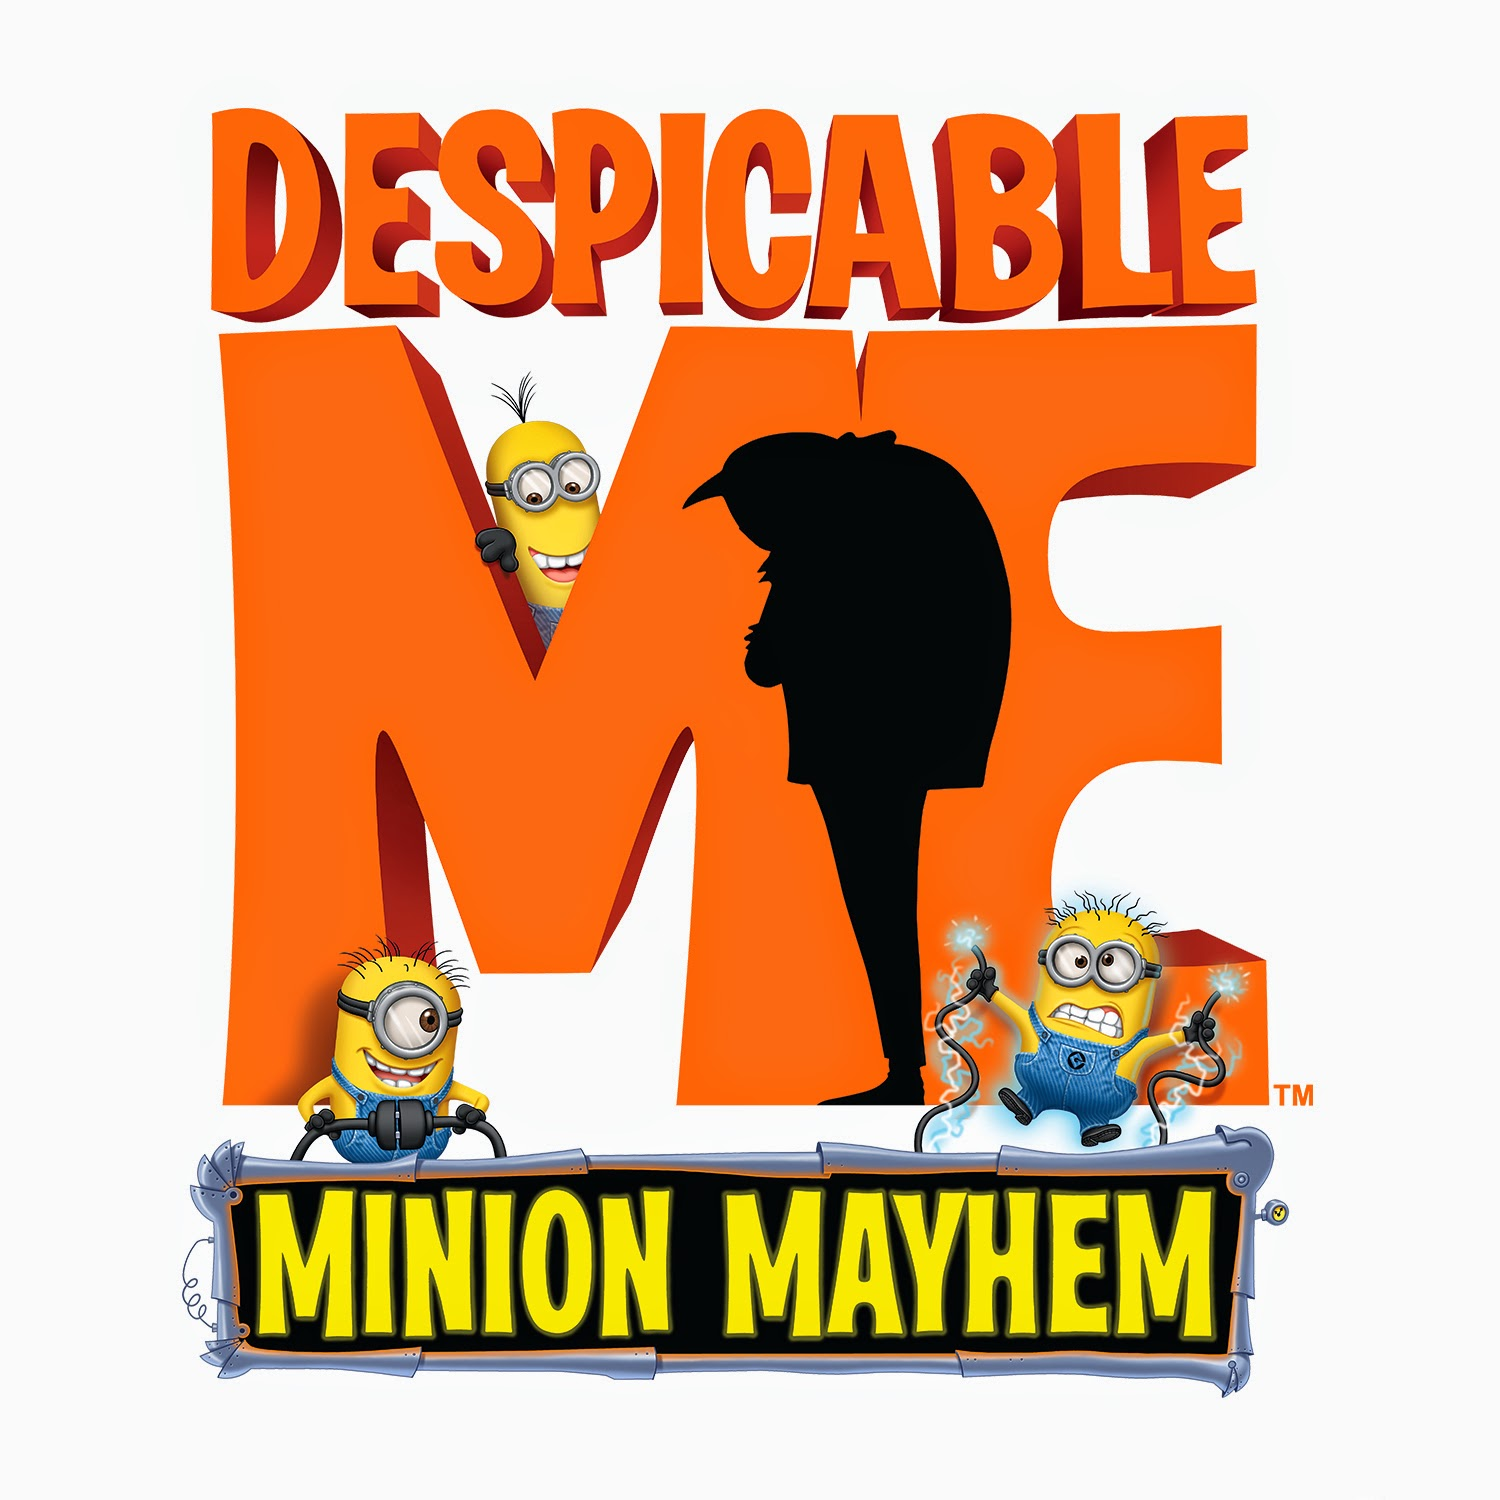 Minion Mayhem Despicable Me animatedfilmreviews.filminspector.com